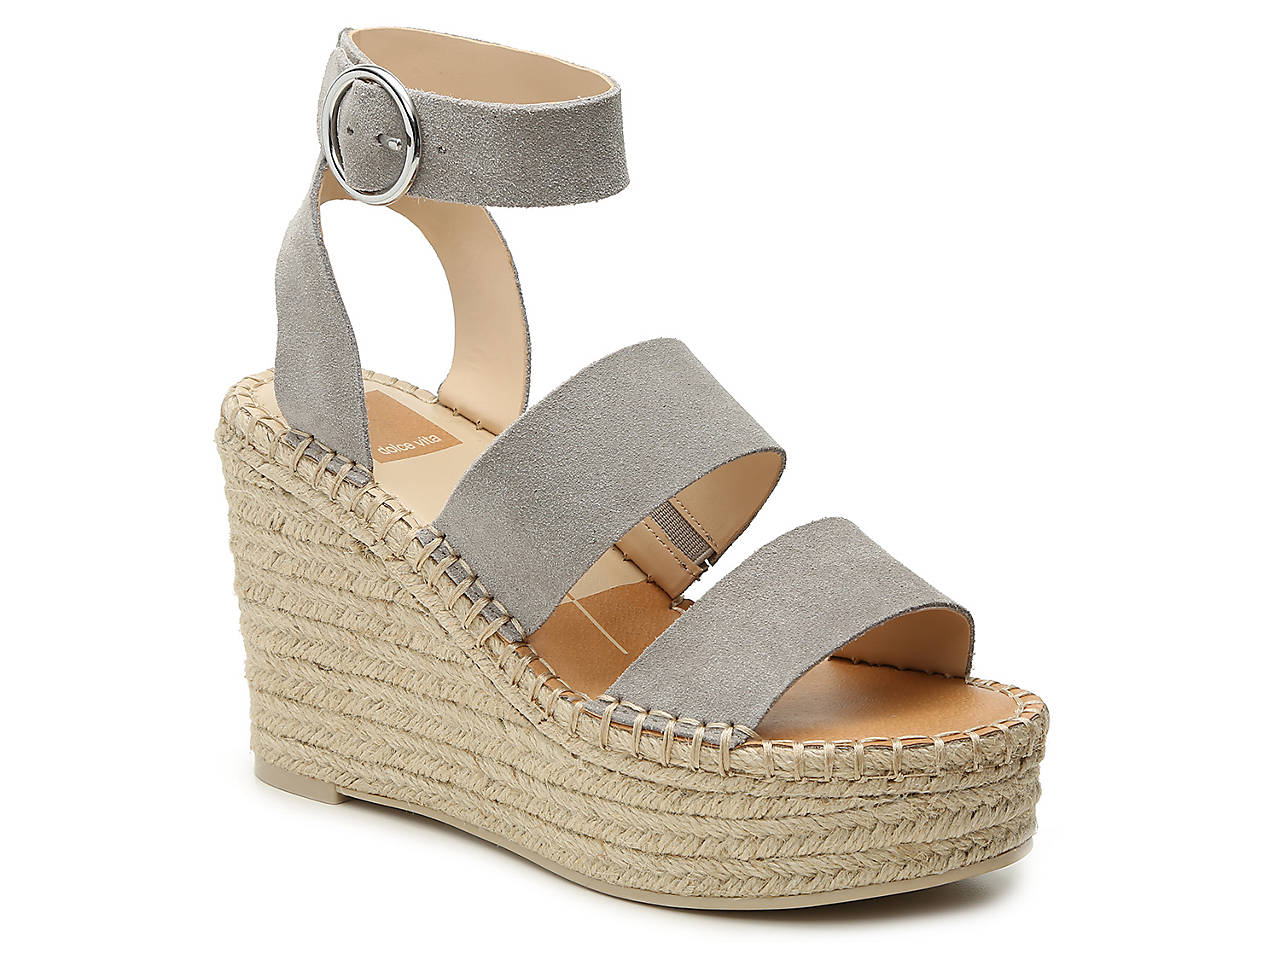 e1c009e3c546 Dolce Vita Shae Espadrille Wedge Sandal Women s Shoes